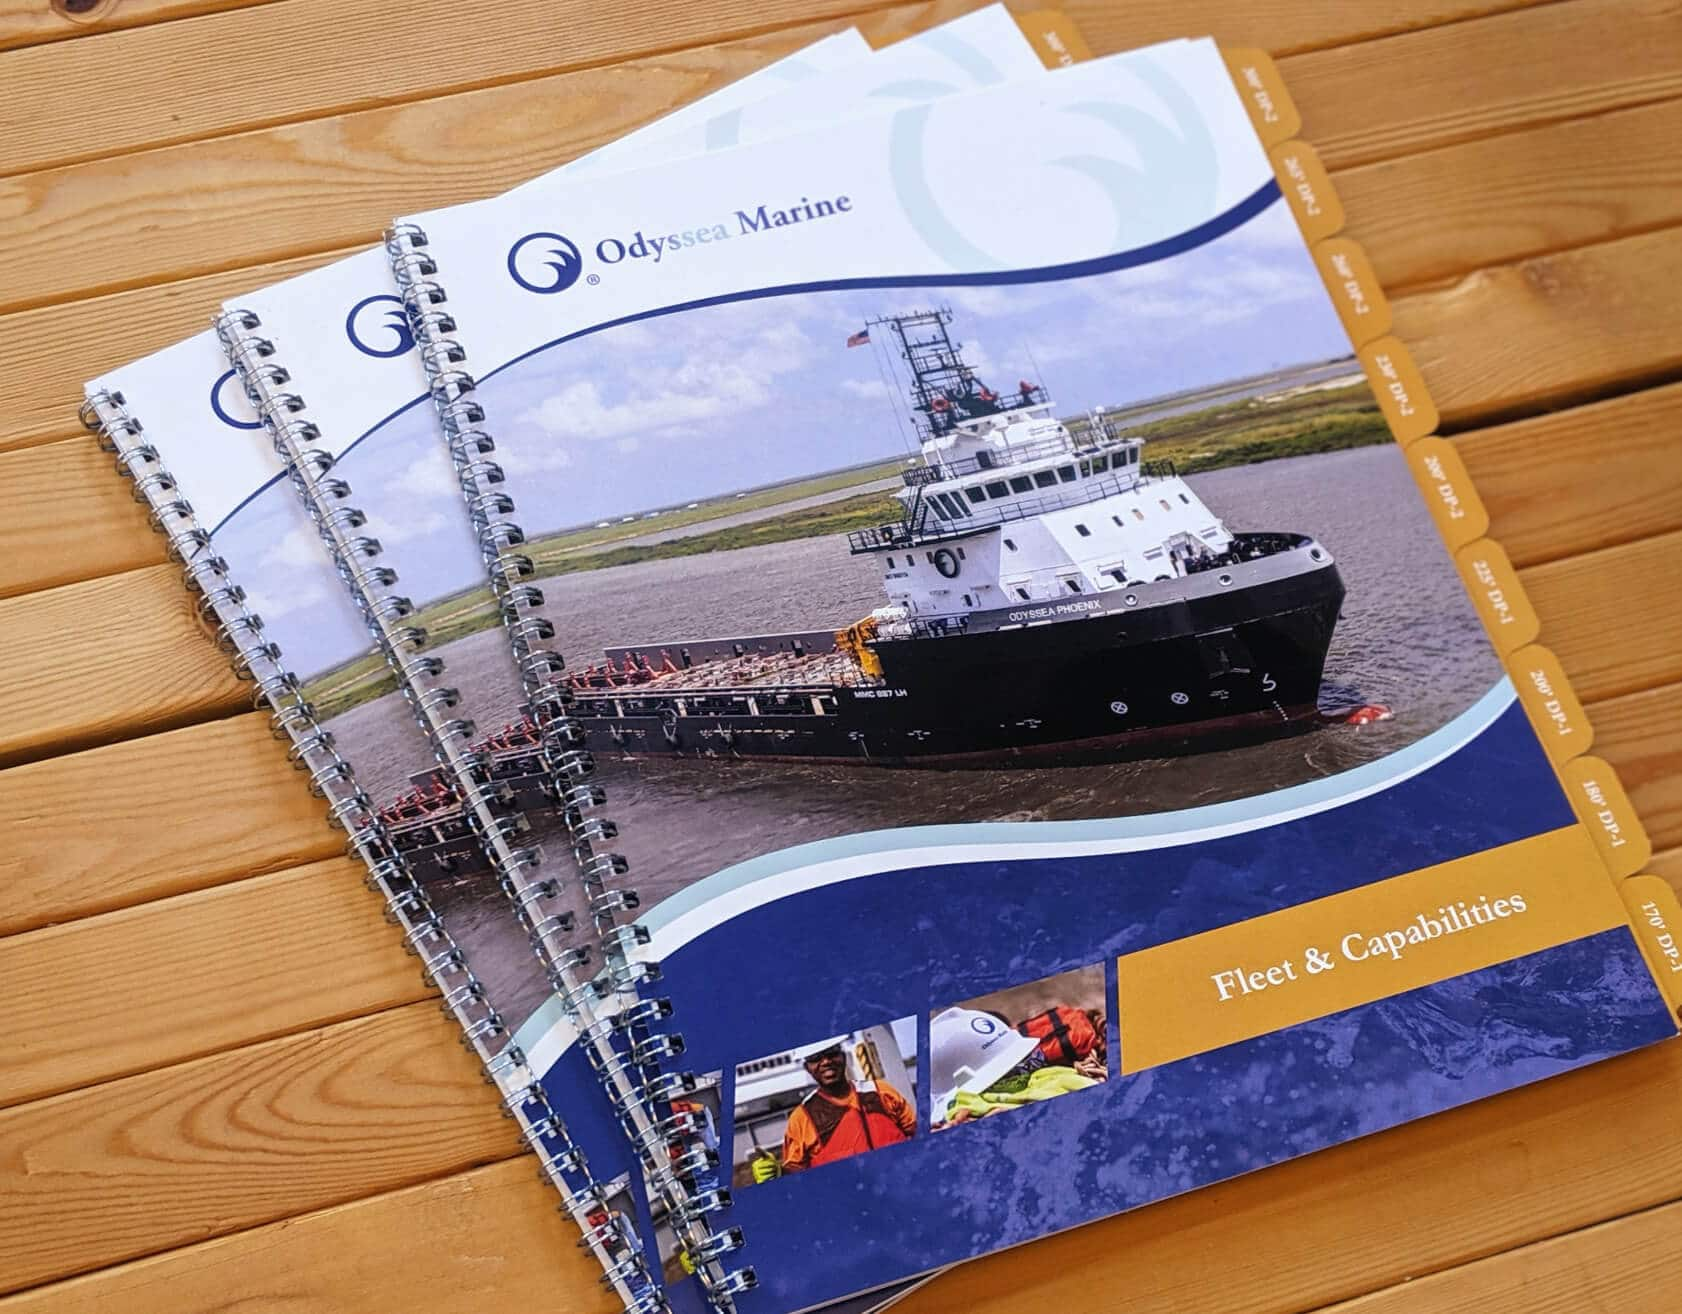 Odyssea Marine Tow Boat Specifications Booklets